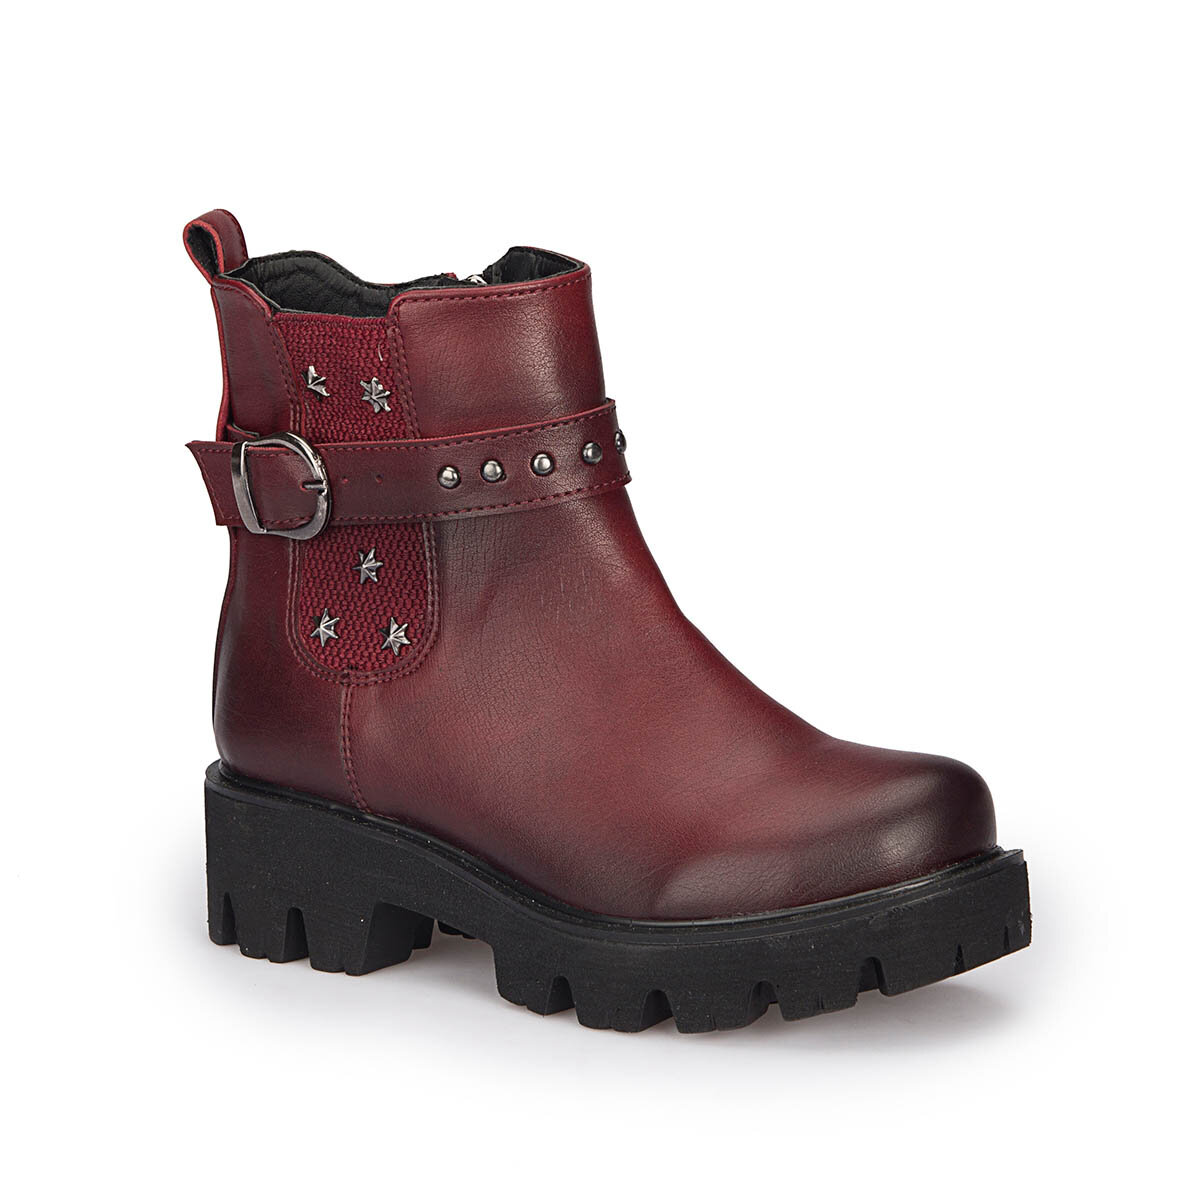 FLO 72.509649.F Burgundy Female Child Boots Polaris